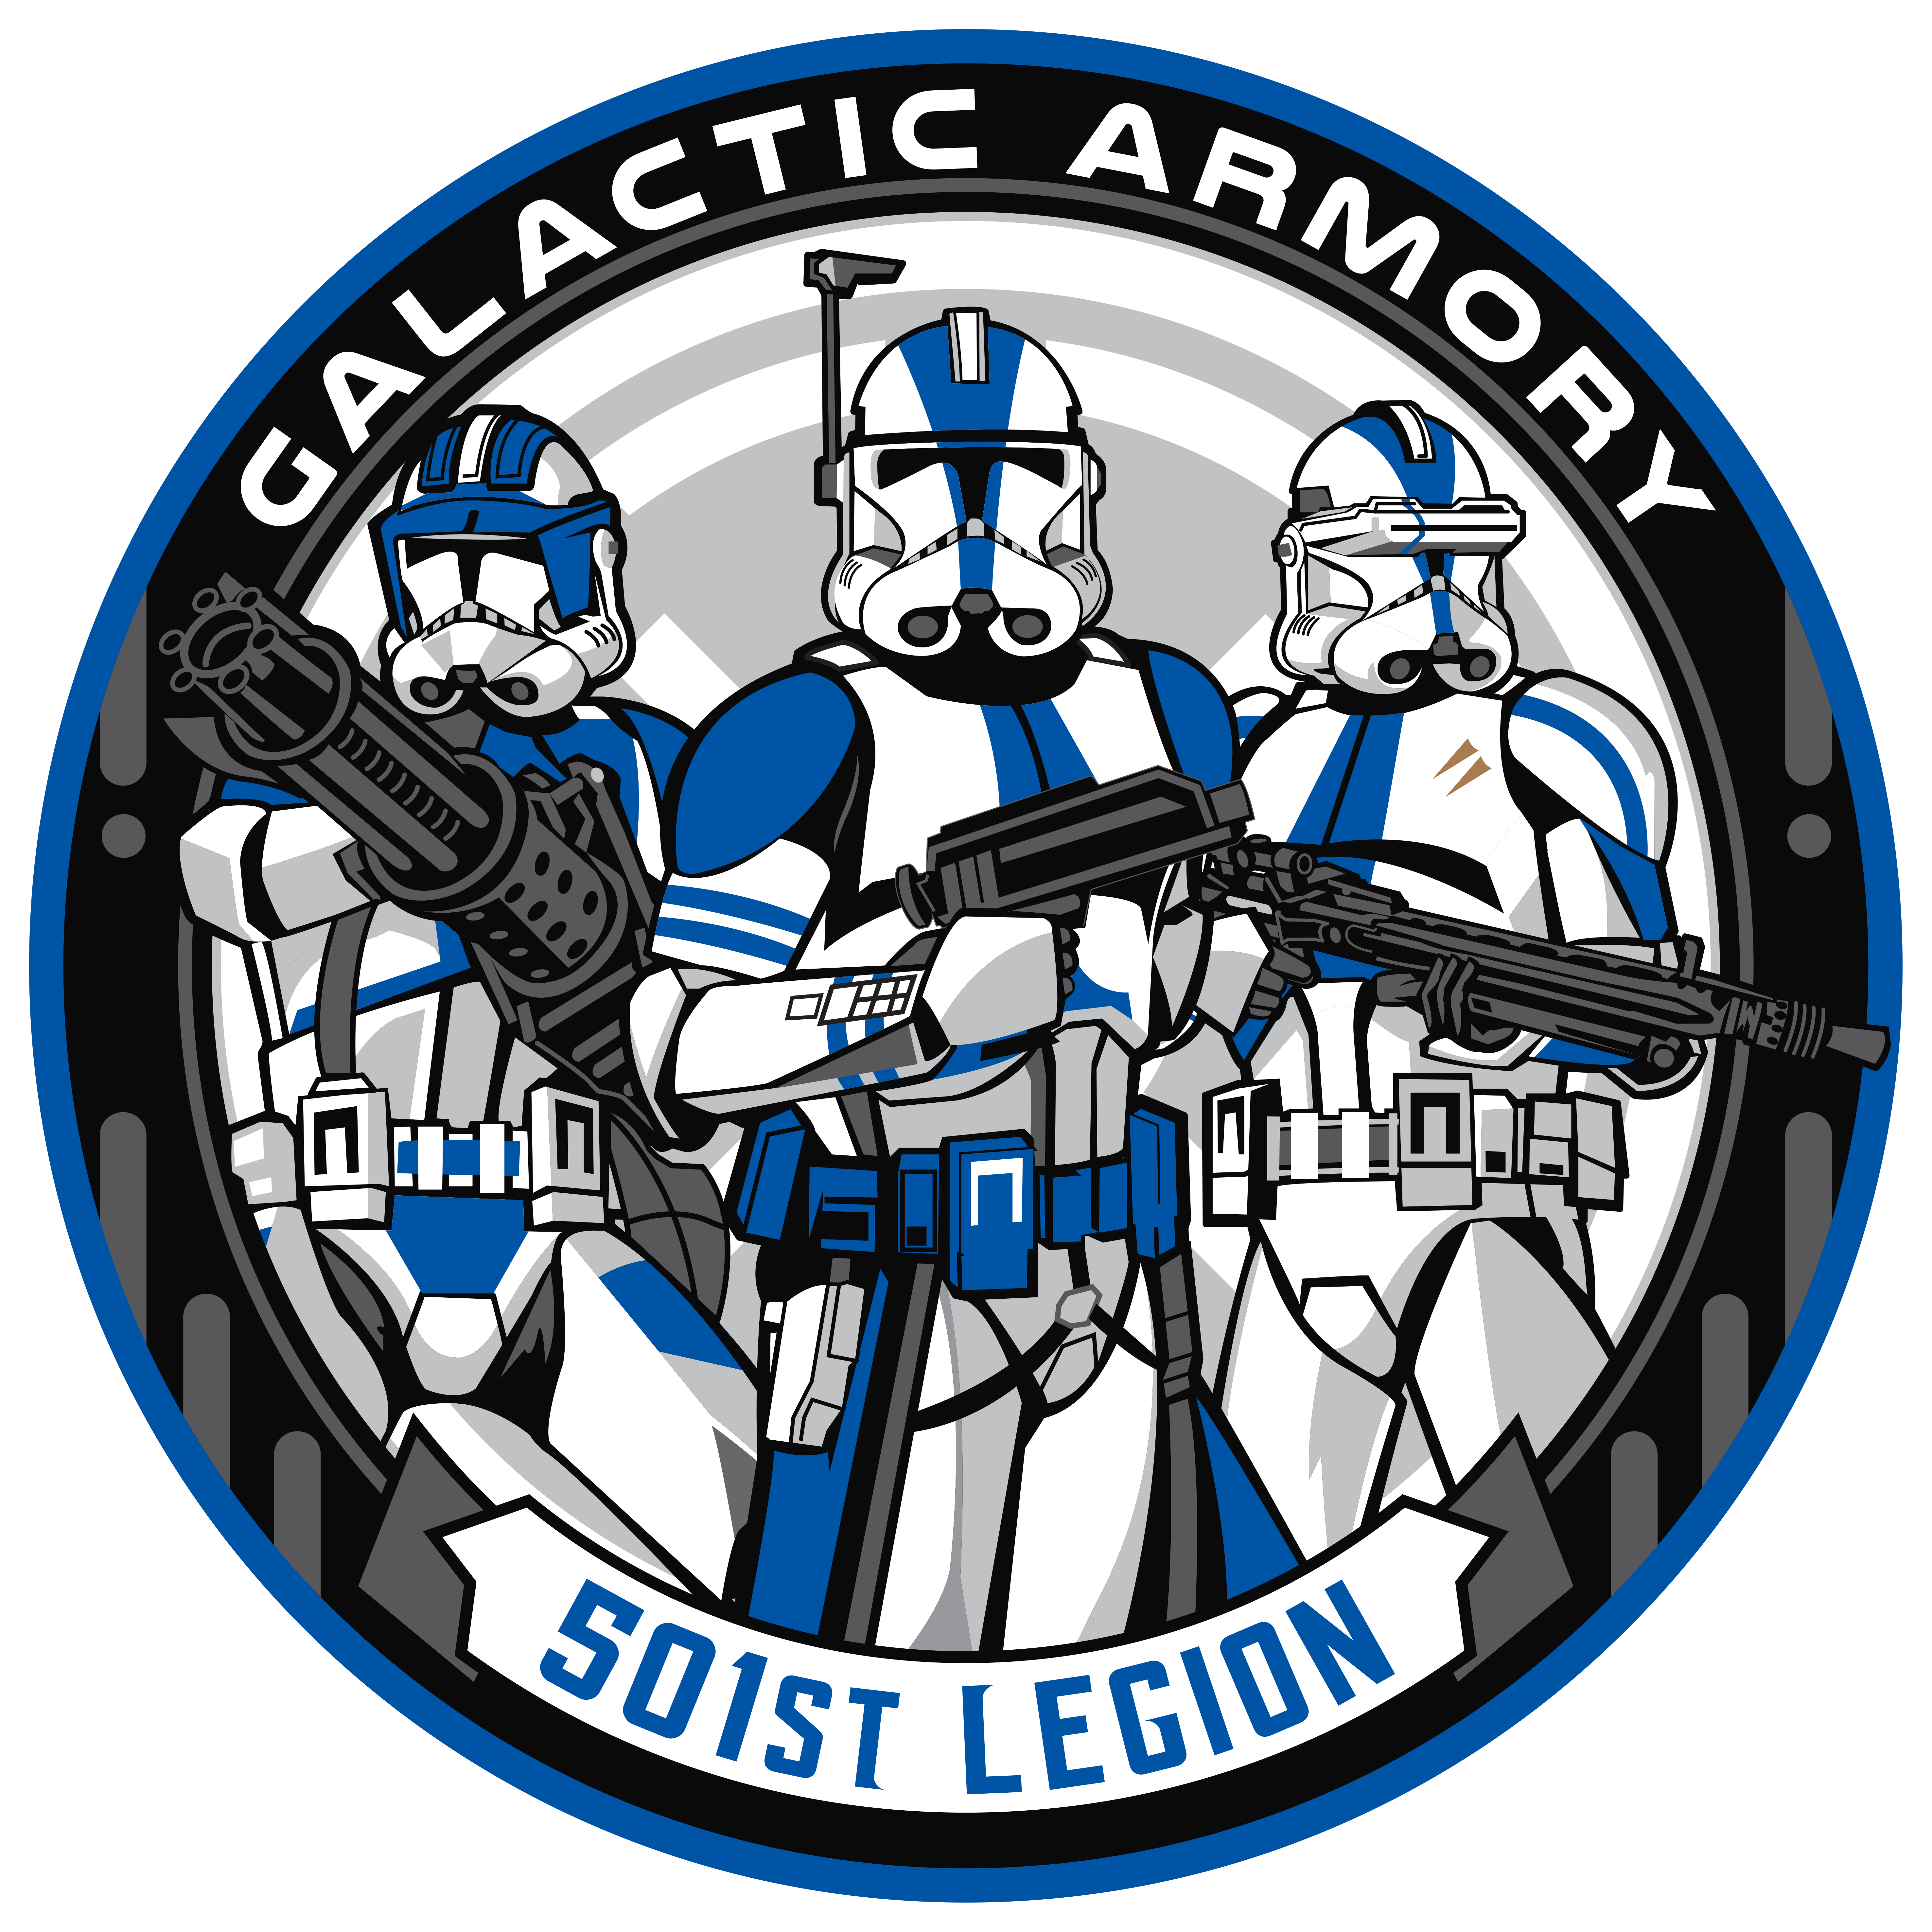 Got another logo designed with some 501st Troopers.